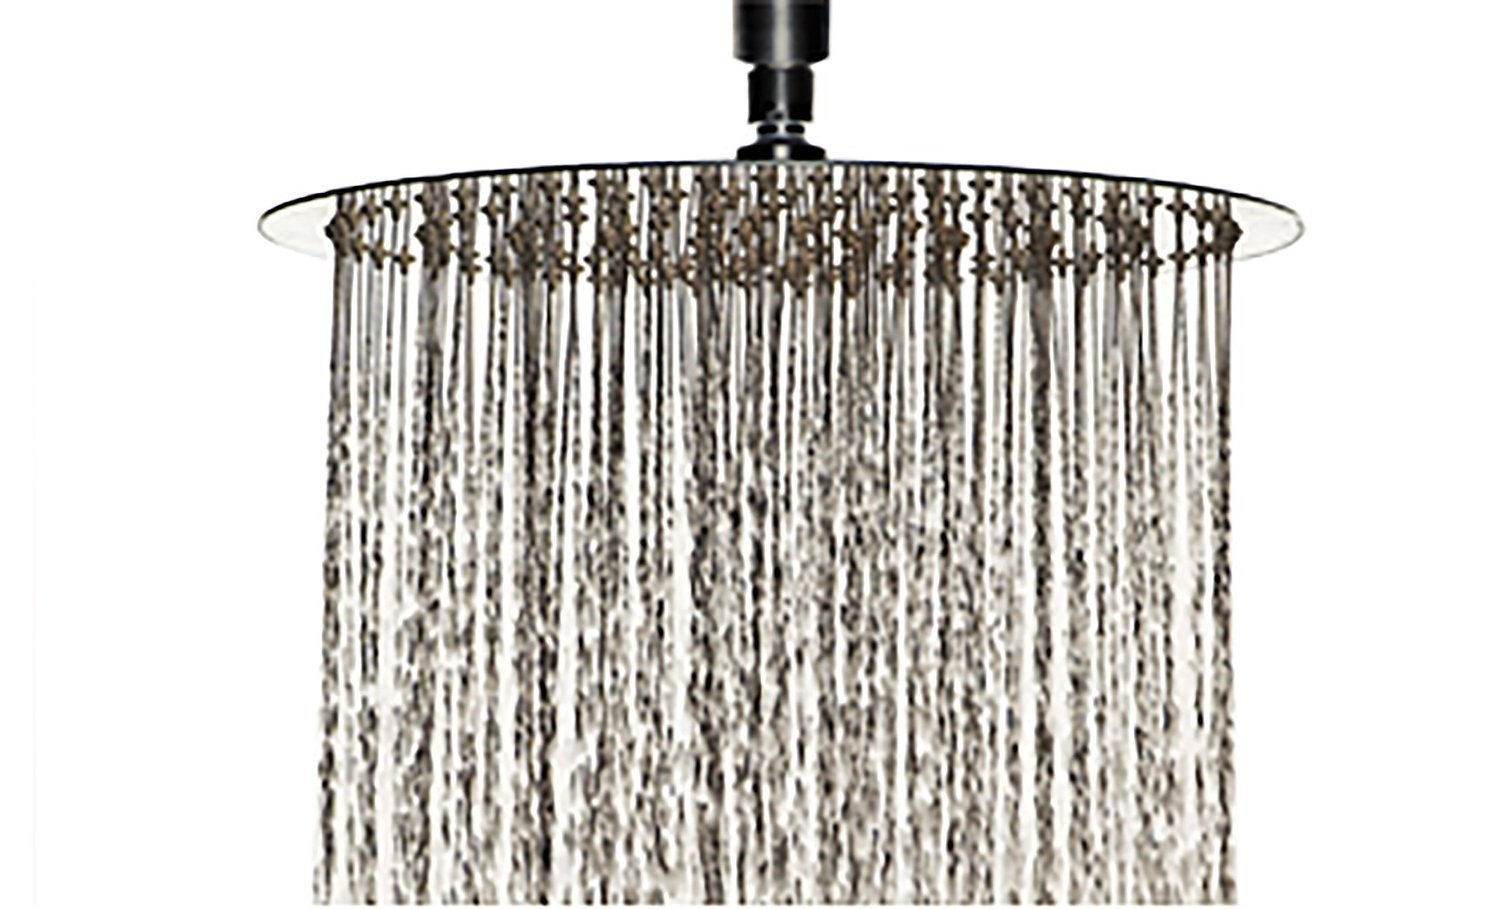 Cb's Bundles 8 Inch Chrome Rainfall High Pressure Shower Head